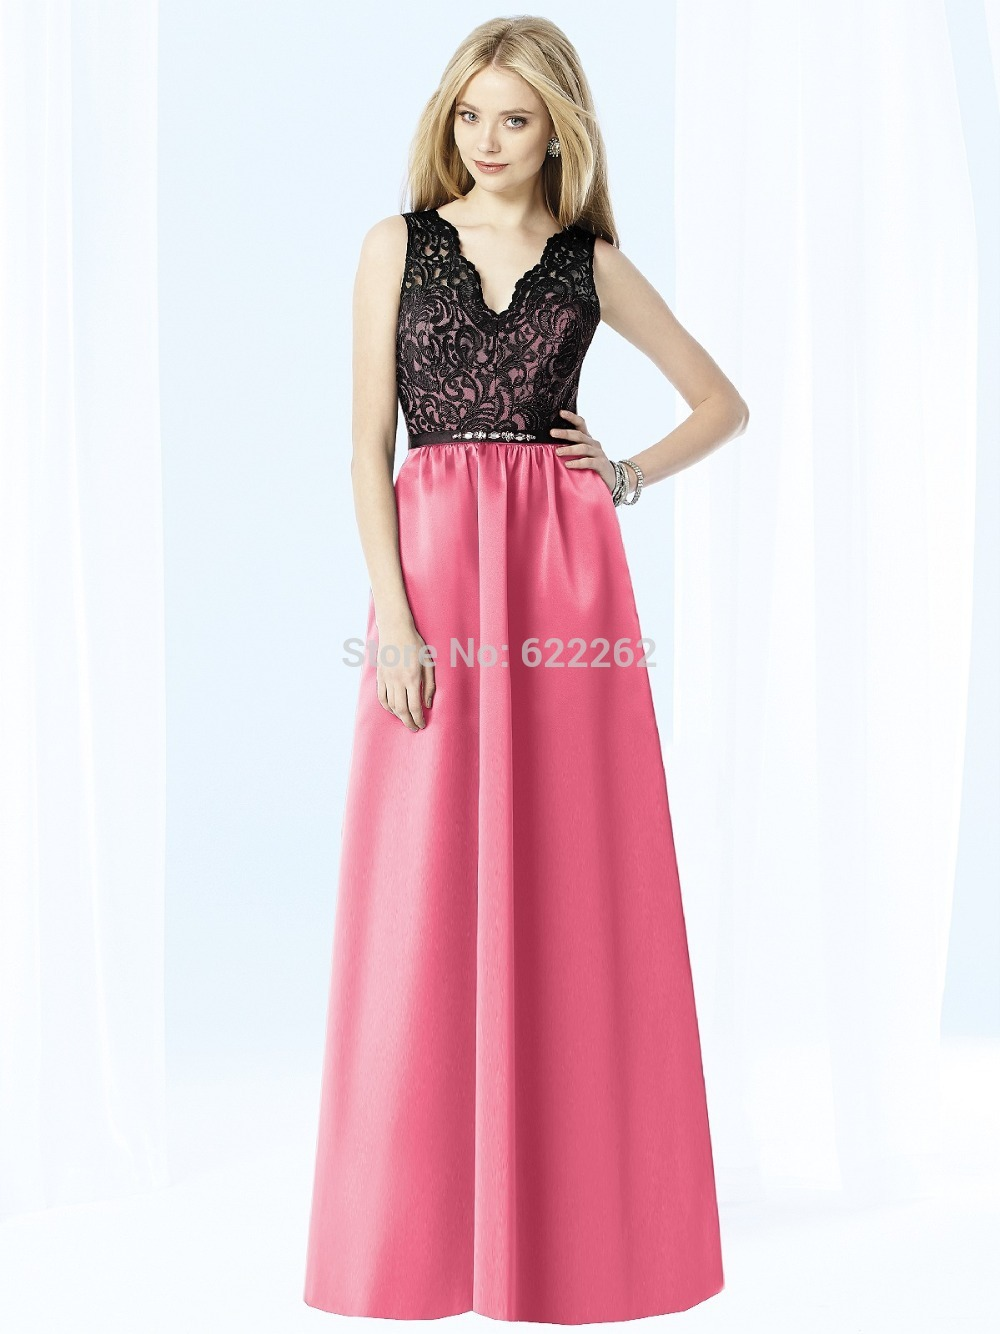 Compare Prices on Black Lace Dress Bridesmaid- Online Shopping/Buy ...